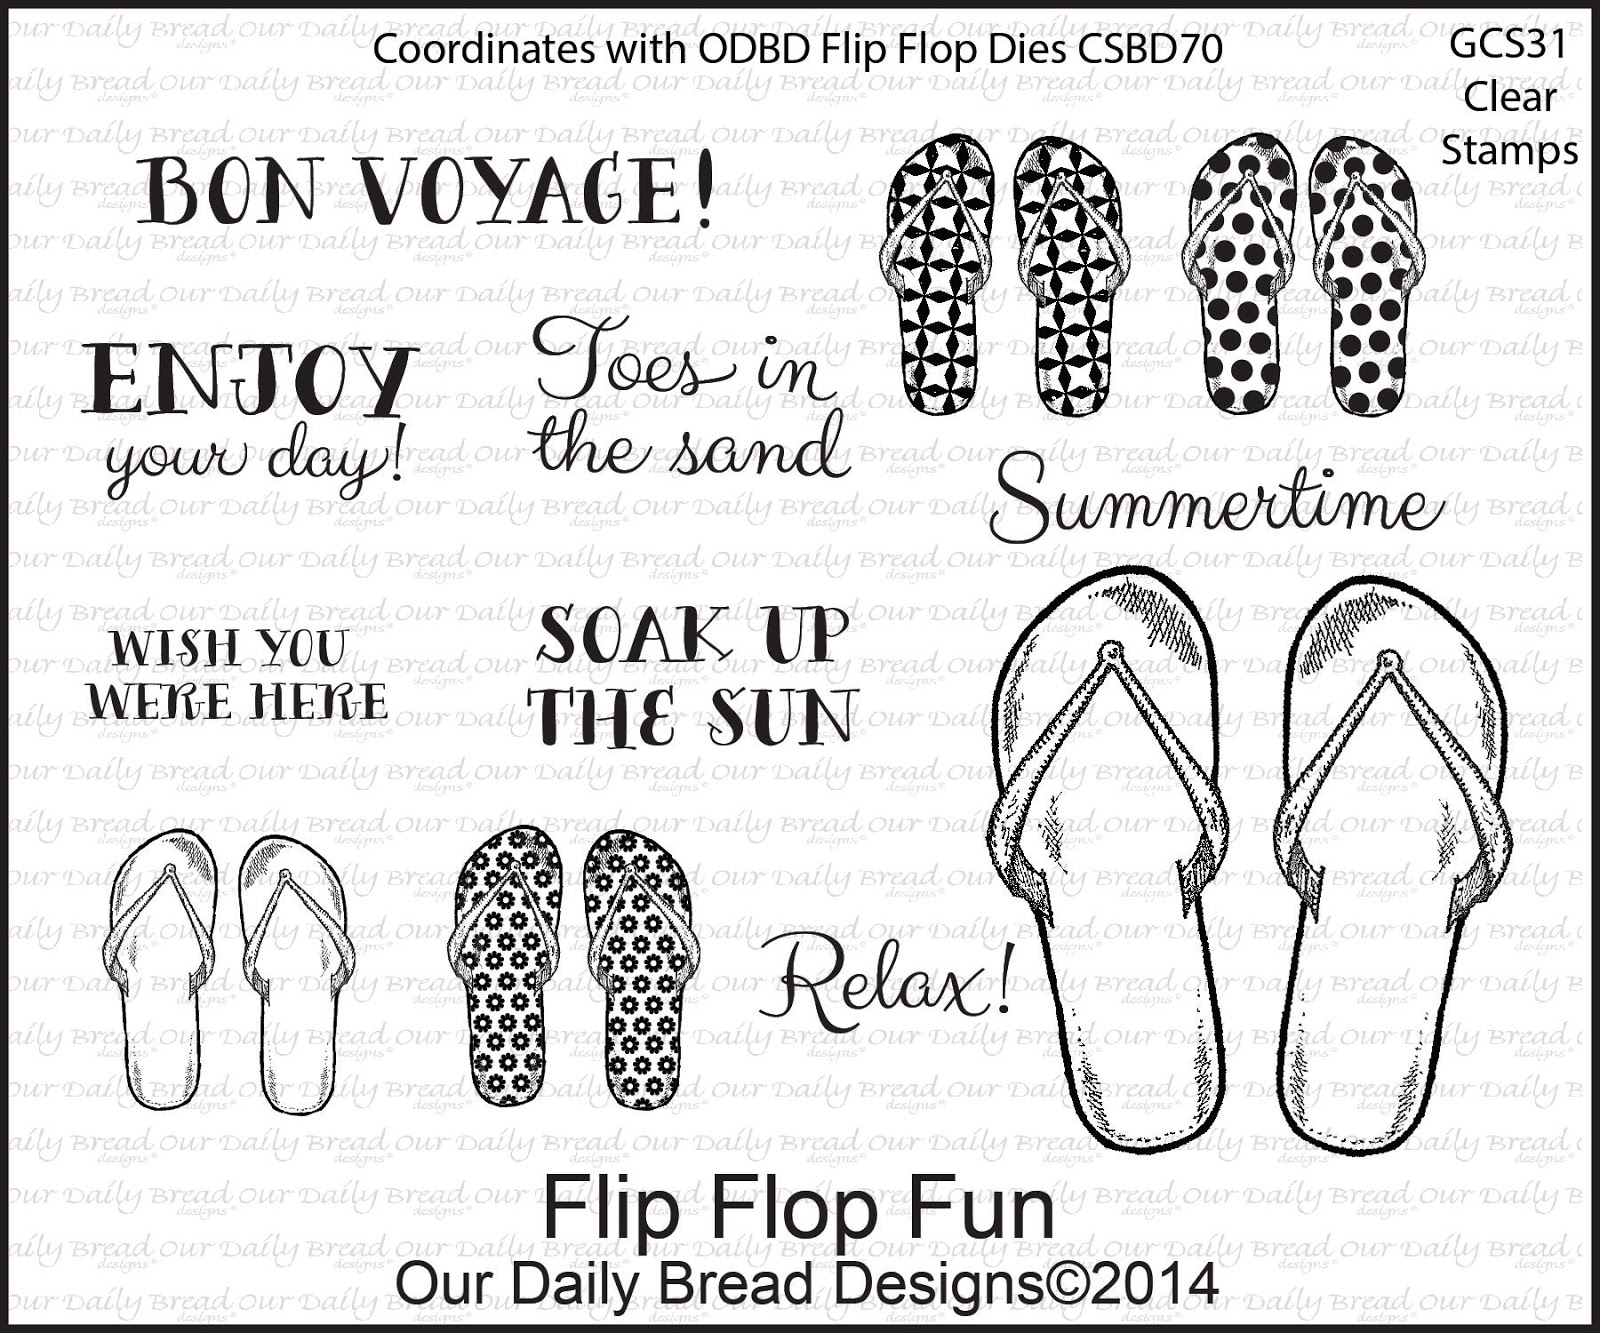 Stamps - Our Daily Bread Designs Flip Flop Fun